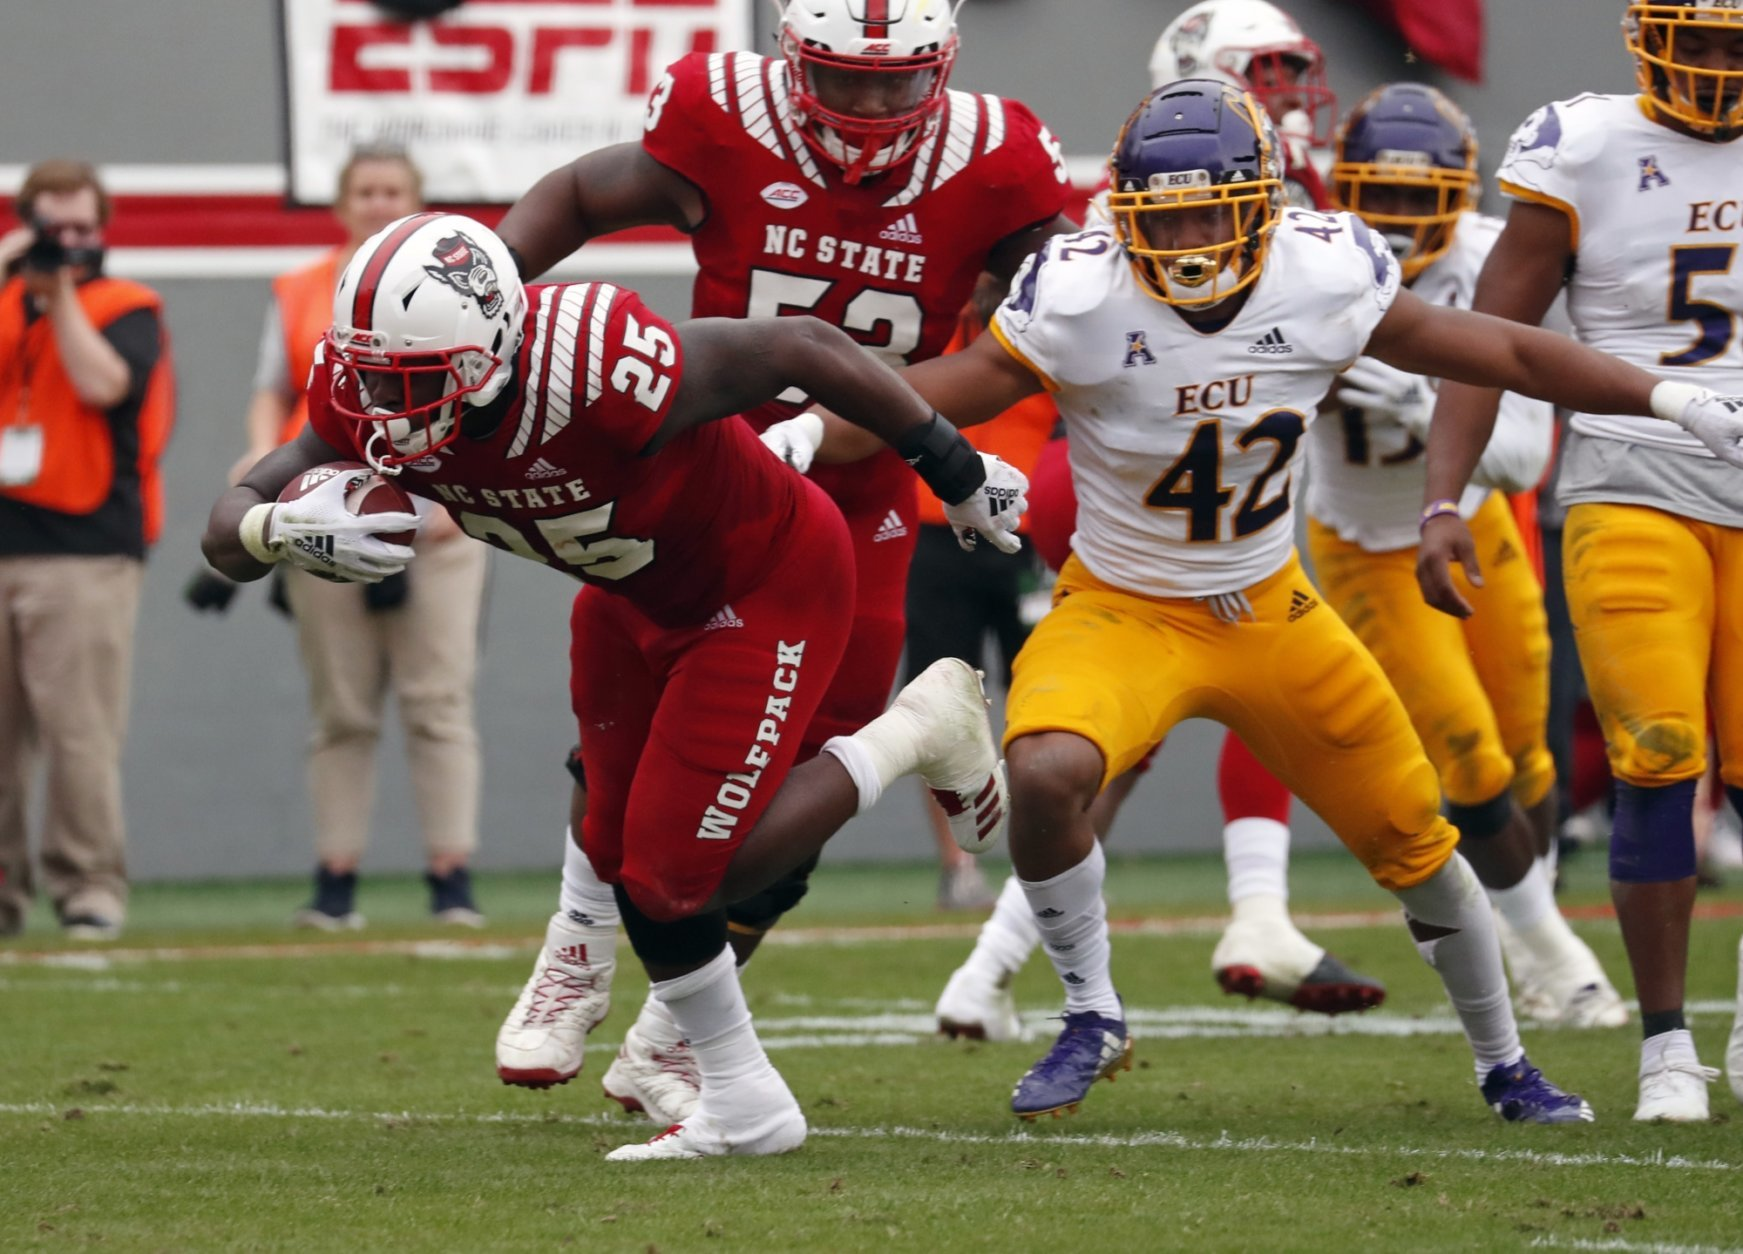 North Carolina State's Reggie Gallaspy II (25) breaks away from East Carolina's Devon Sutton (42) as he runs for a touchdown during the first half of NCAA college football game in Raleigh, N.C., Saturday, Dec. 1, 2018. (AP Photo/Chris Seward)